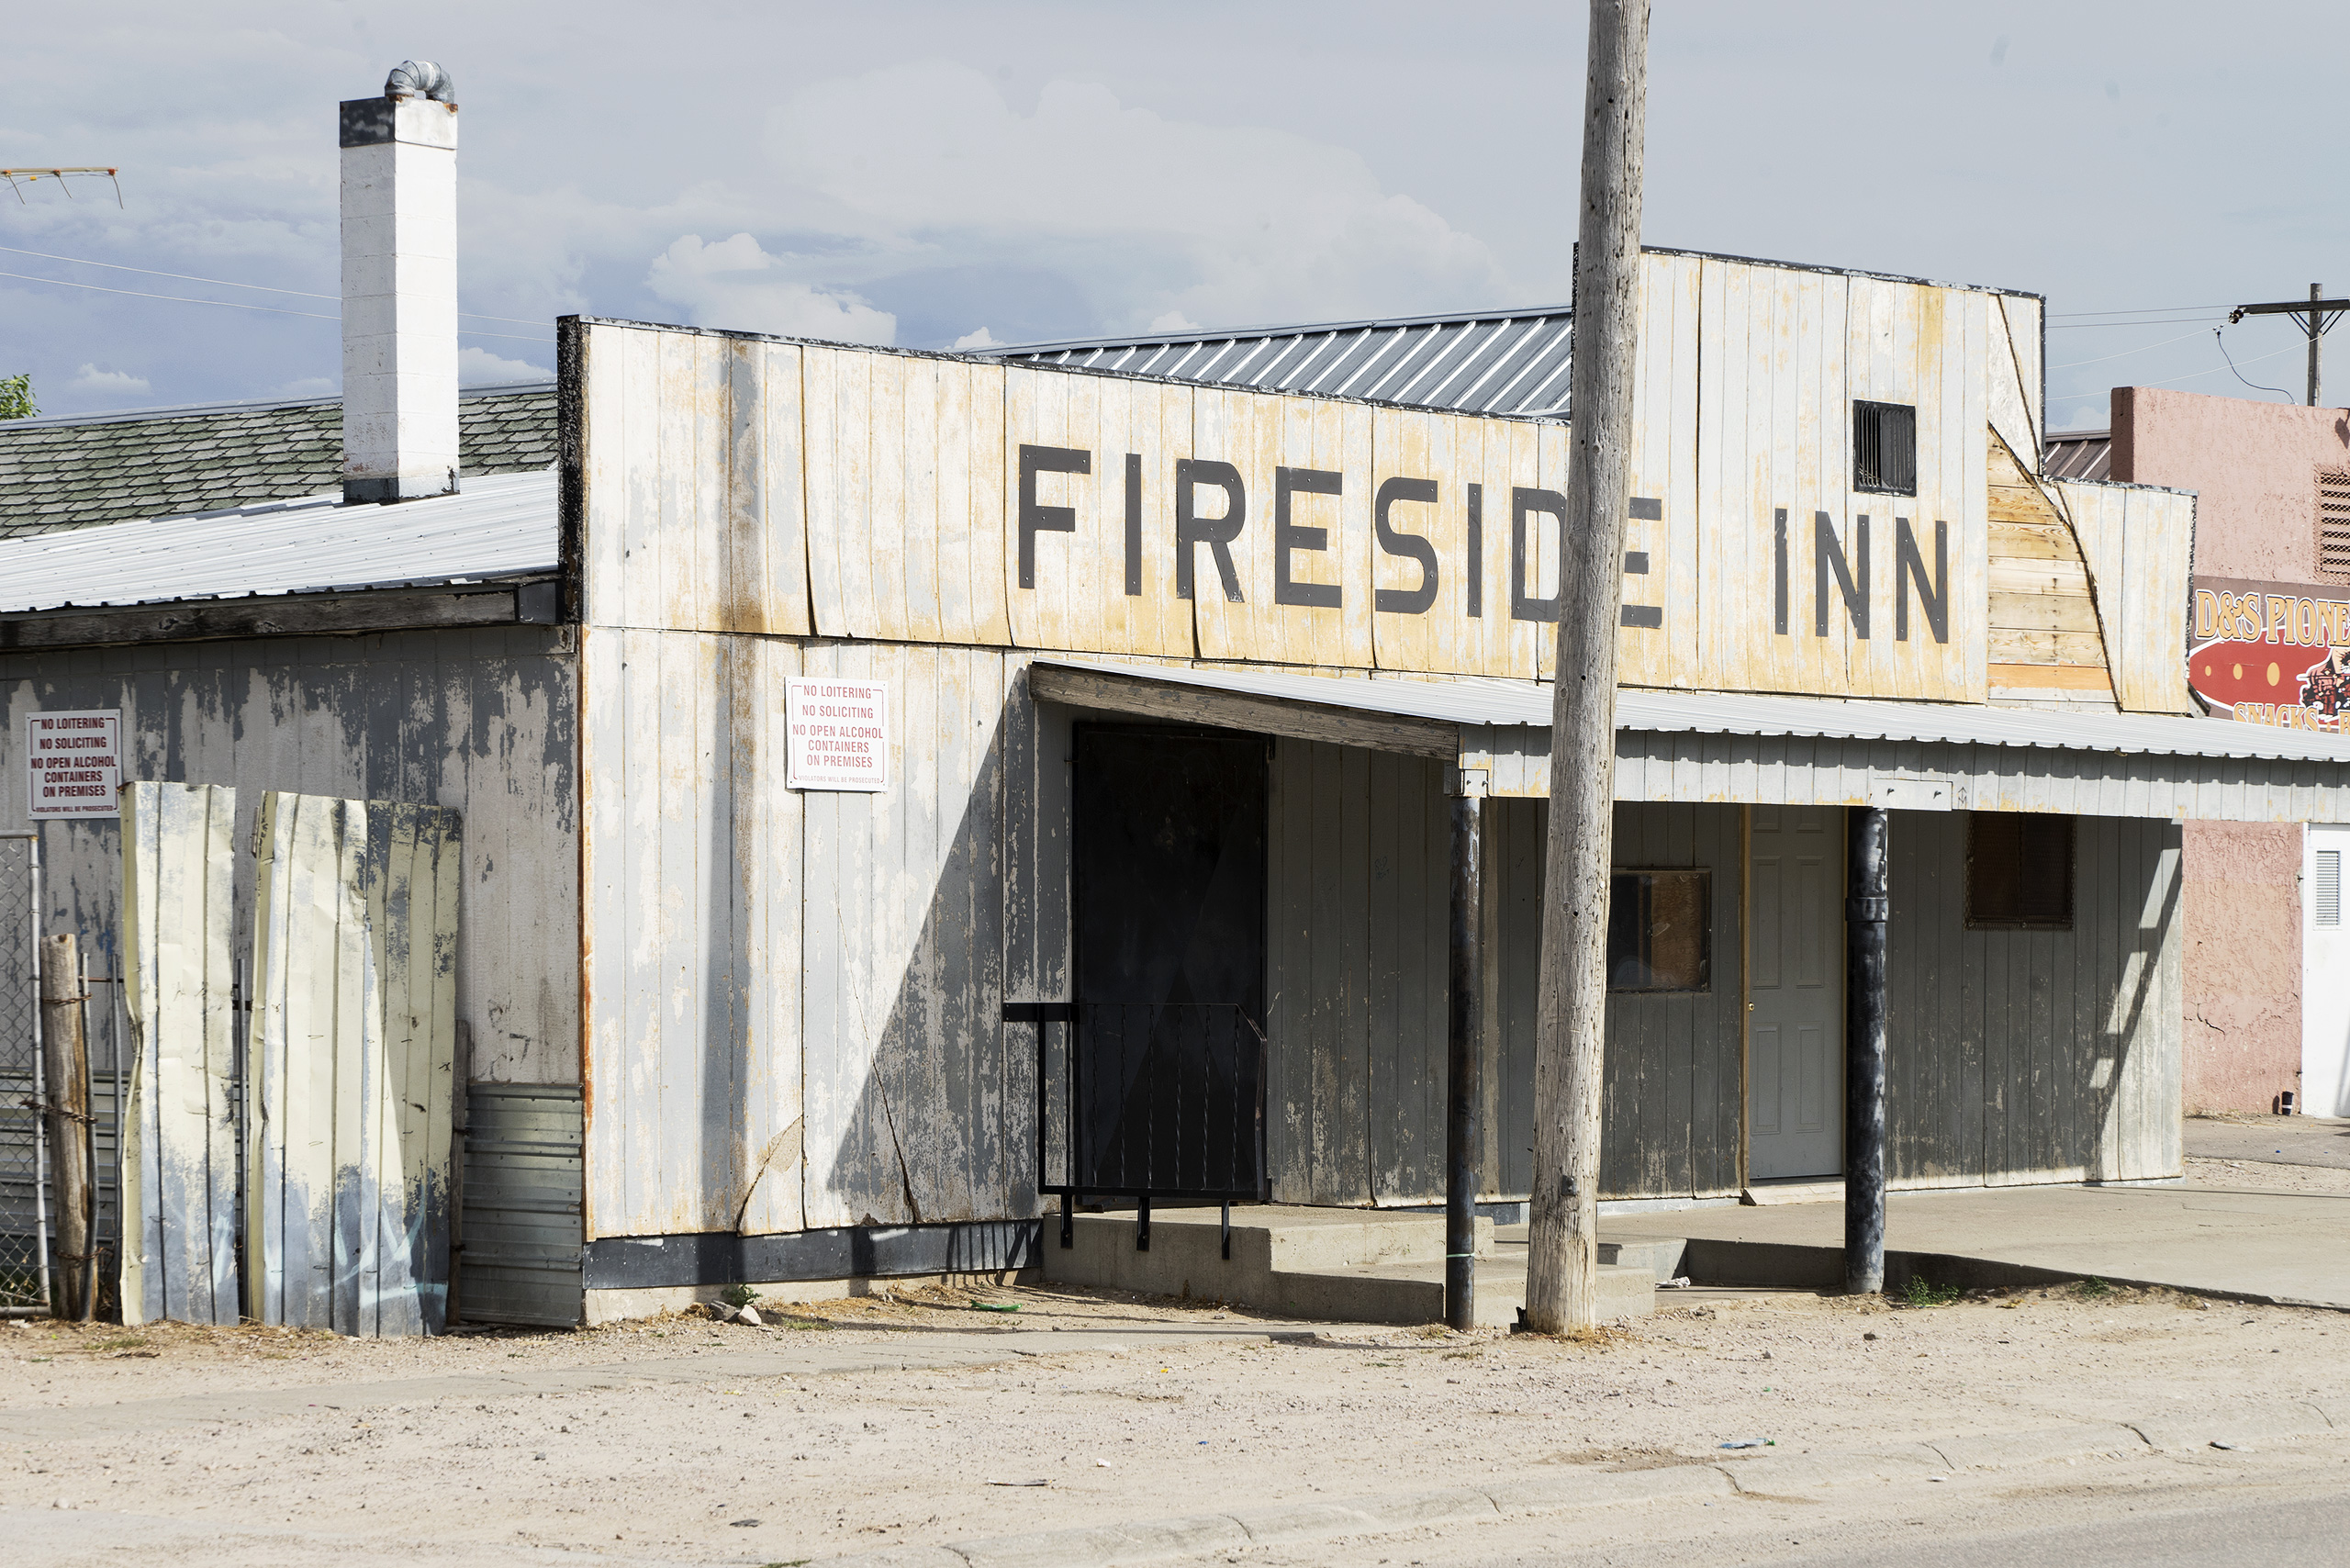 The Fireside Inn; Mission, SD | Photo: Matthias Ries  The Fireside Inn is one of the four bars and restaurants in Whiteclay that sell alcohol. The reason why I mention this is because Whiteclay is a 10-house town that sells nearly 5 million cans of beer every year; that is 13.000 cans a day. It is also the first village outside the Pine Ridge Oglala Sioux reservation in South Dakota, where possessing and consuming alcohol is prohibited and that suffers from an extremely high unemployment and alcoholism rate. Whiteclay is about 100 miles from The Great Plains Art Institute at Sinte Gleska University.